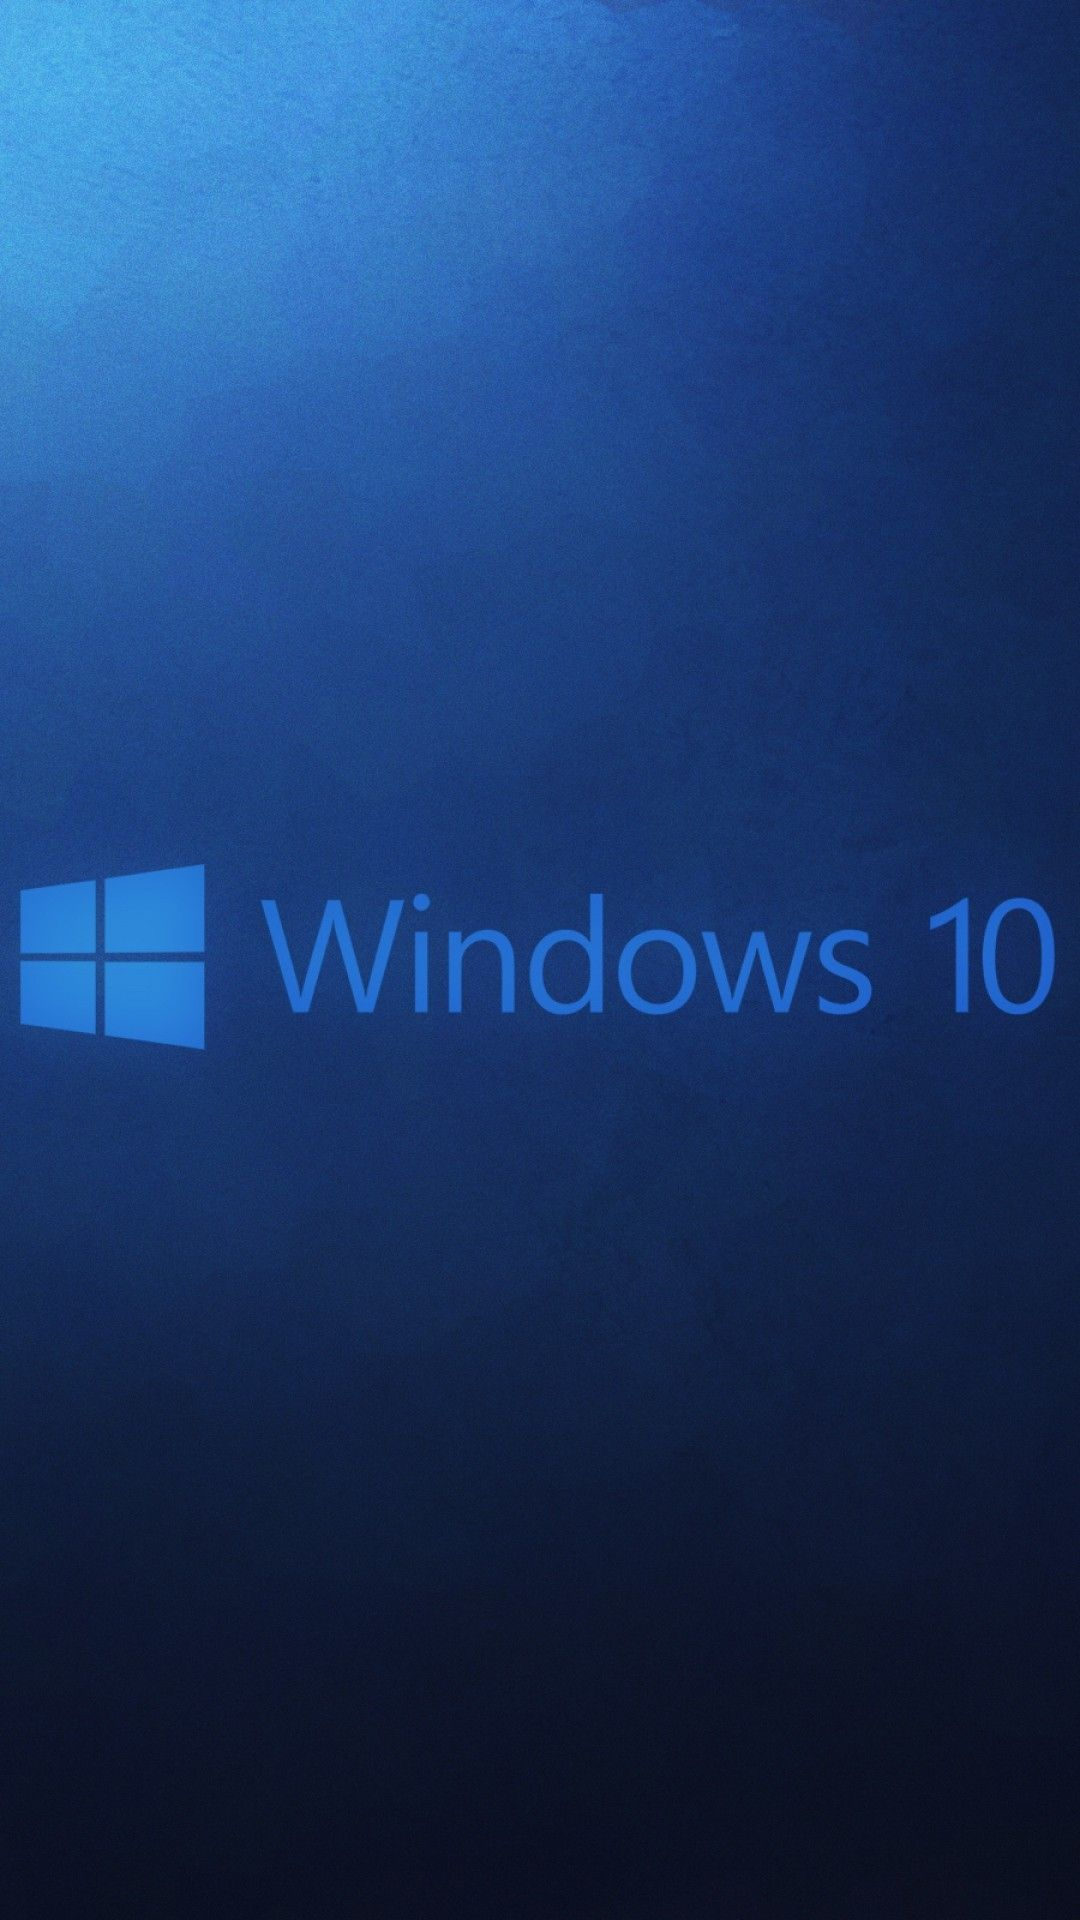 1080x1920 Hd Background Windows 10 Wallpaper Microsoft Operating System Blue Windows Vista Wallpaper Windows Desktop Wallpaper Android Wallpaper